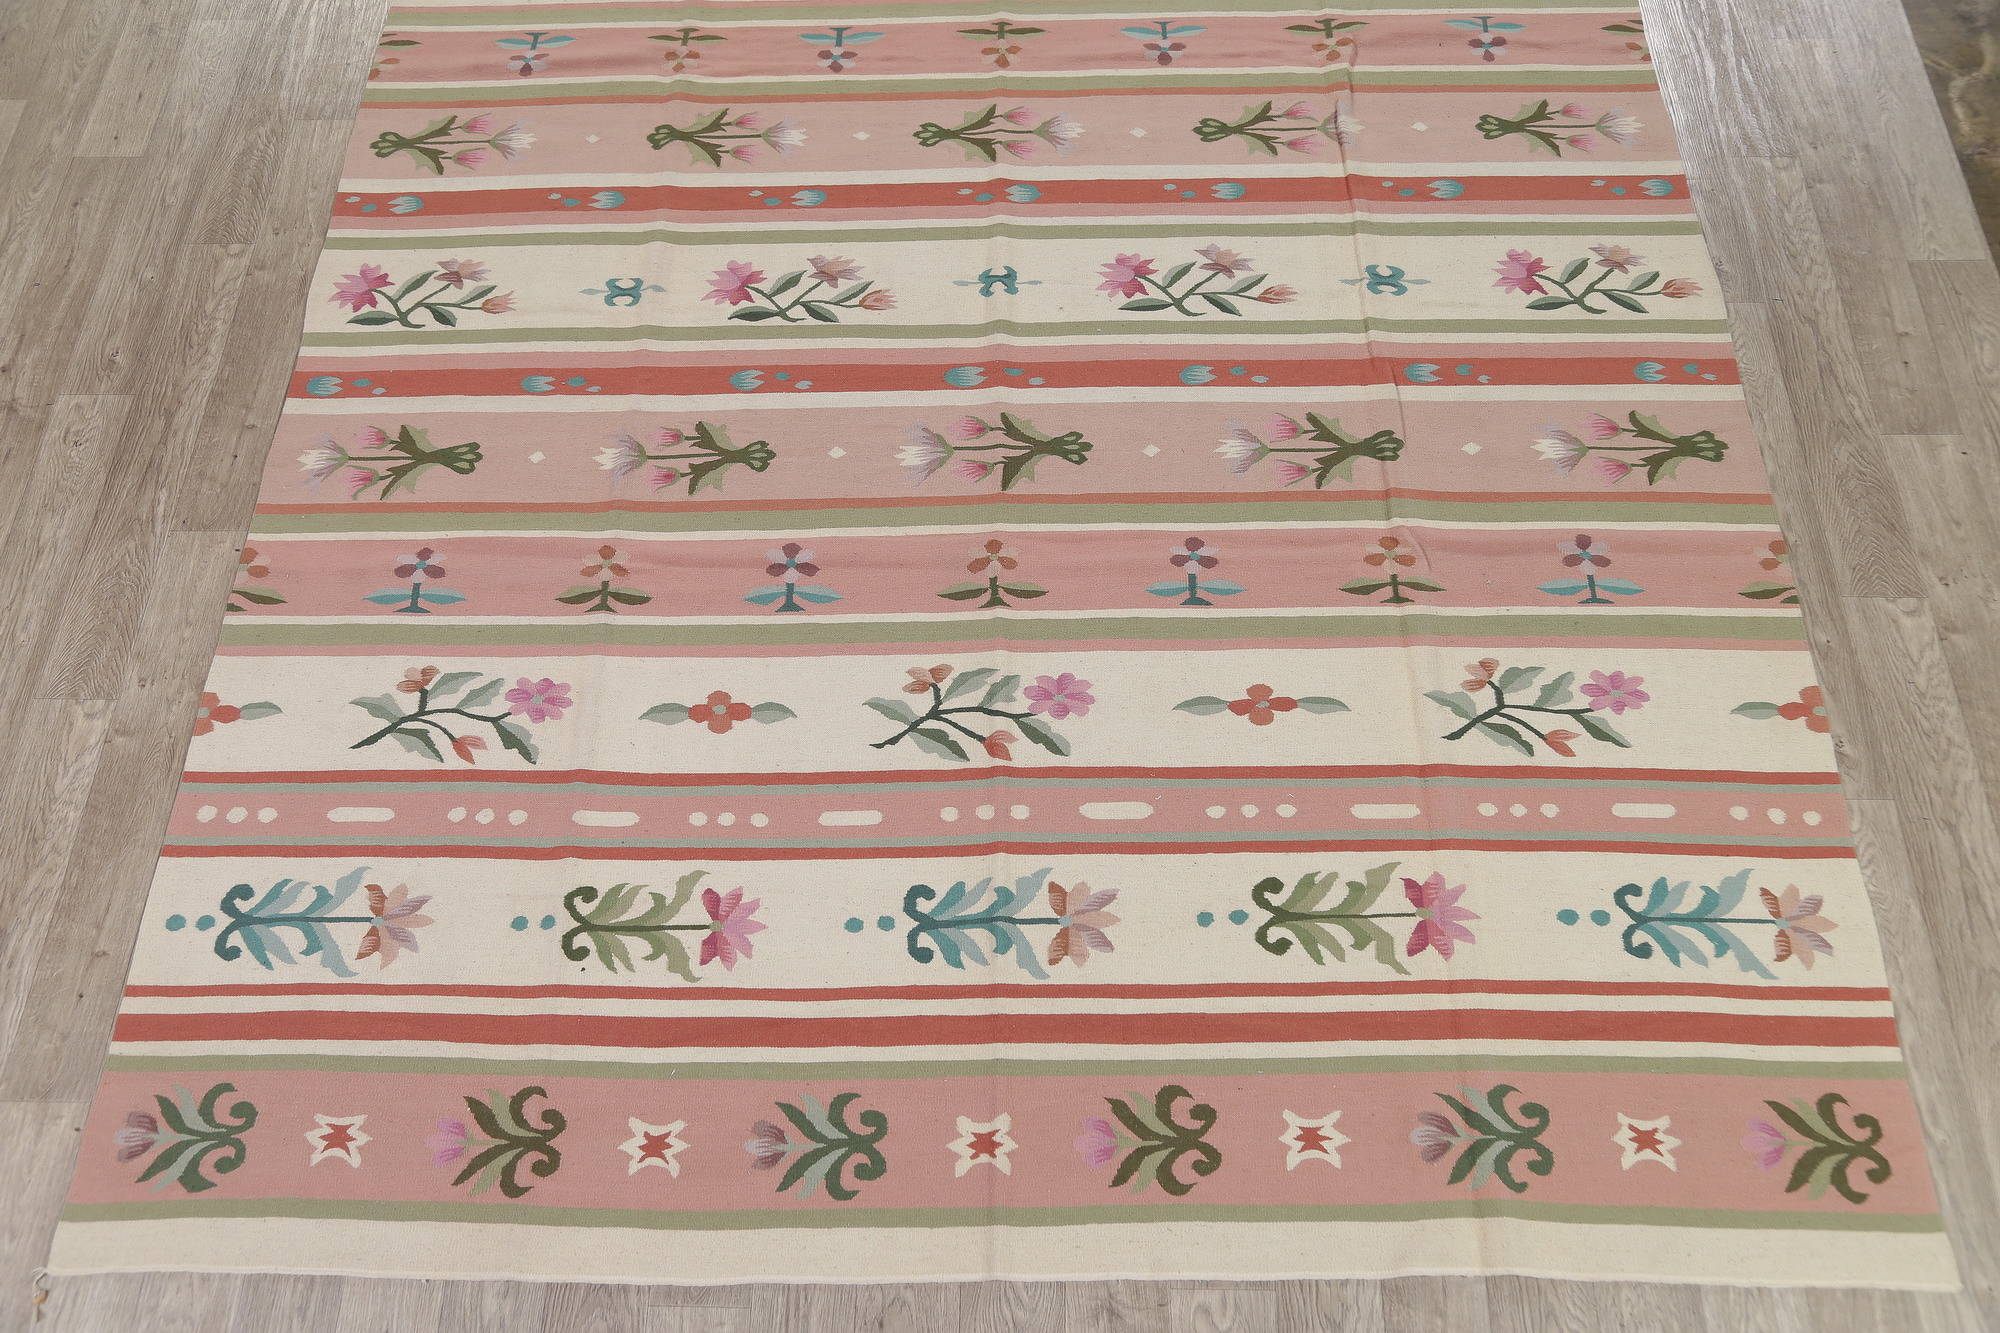 Floral Pink Kilim Indian Oriental Hand-Woven Area Rug Wool 9x12